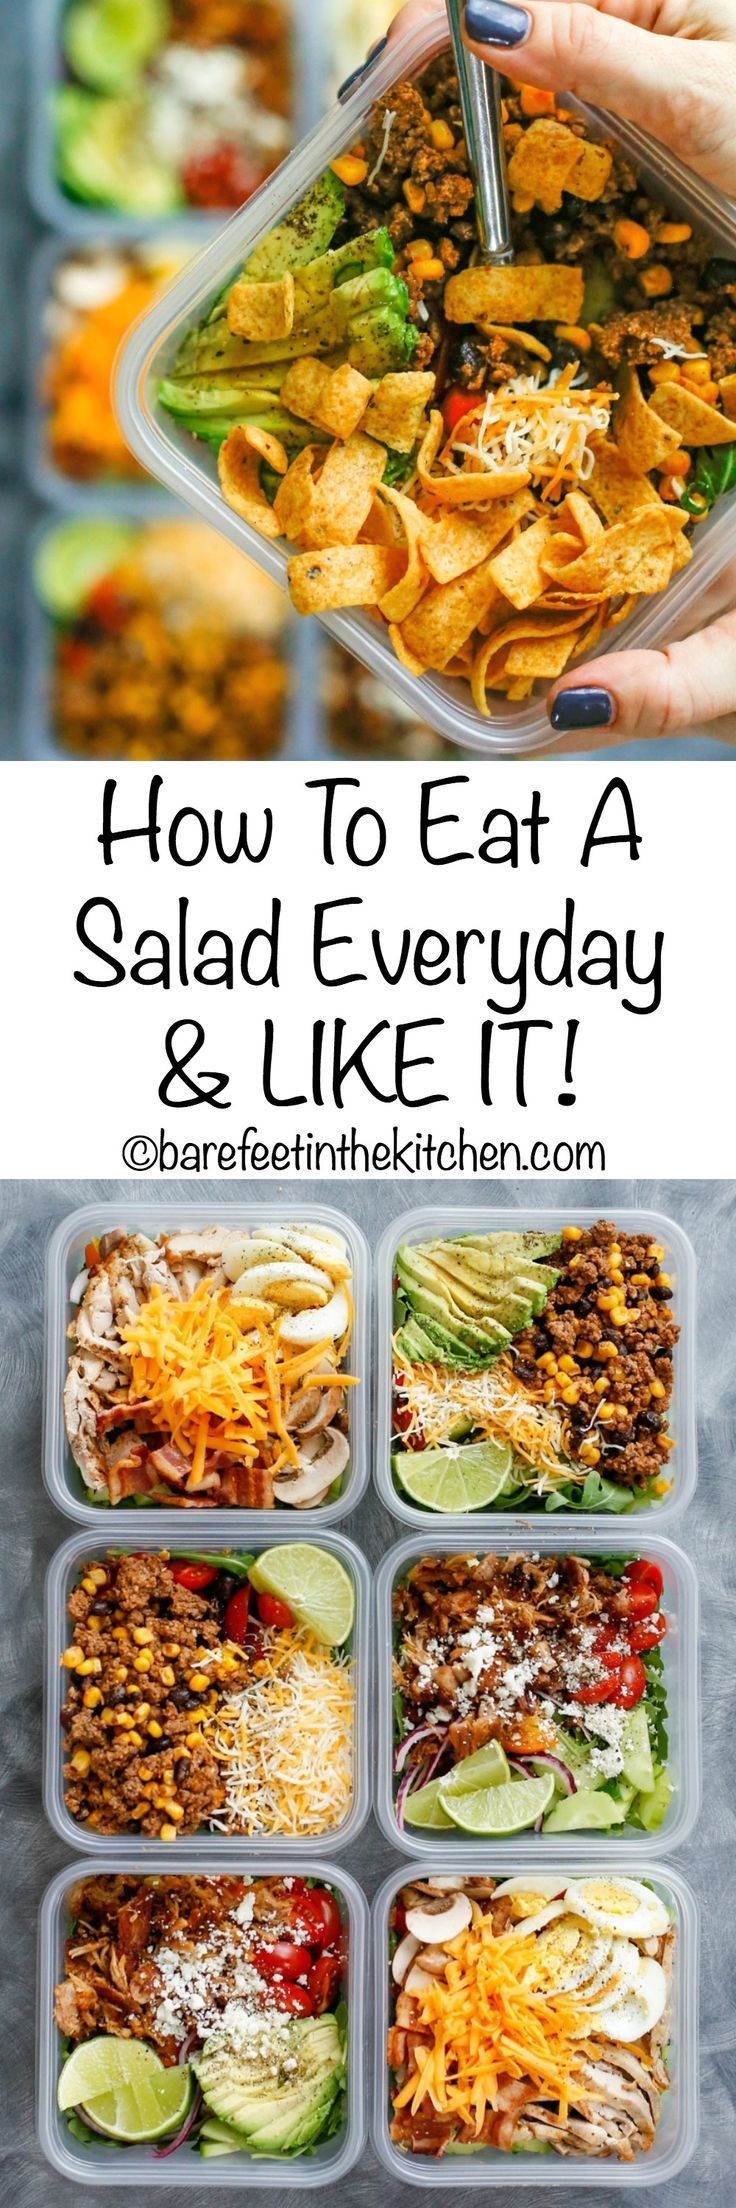 1159 best healthy recipes images on pinterest cooking food aka the fritos everyday diet salad recipes healthy lunchmeal forumfinder Image collections